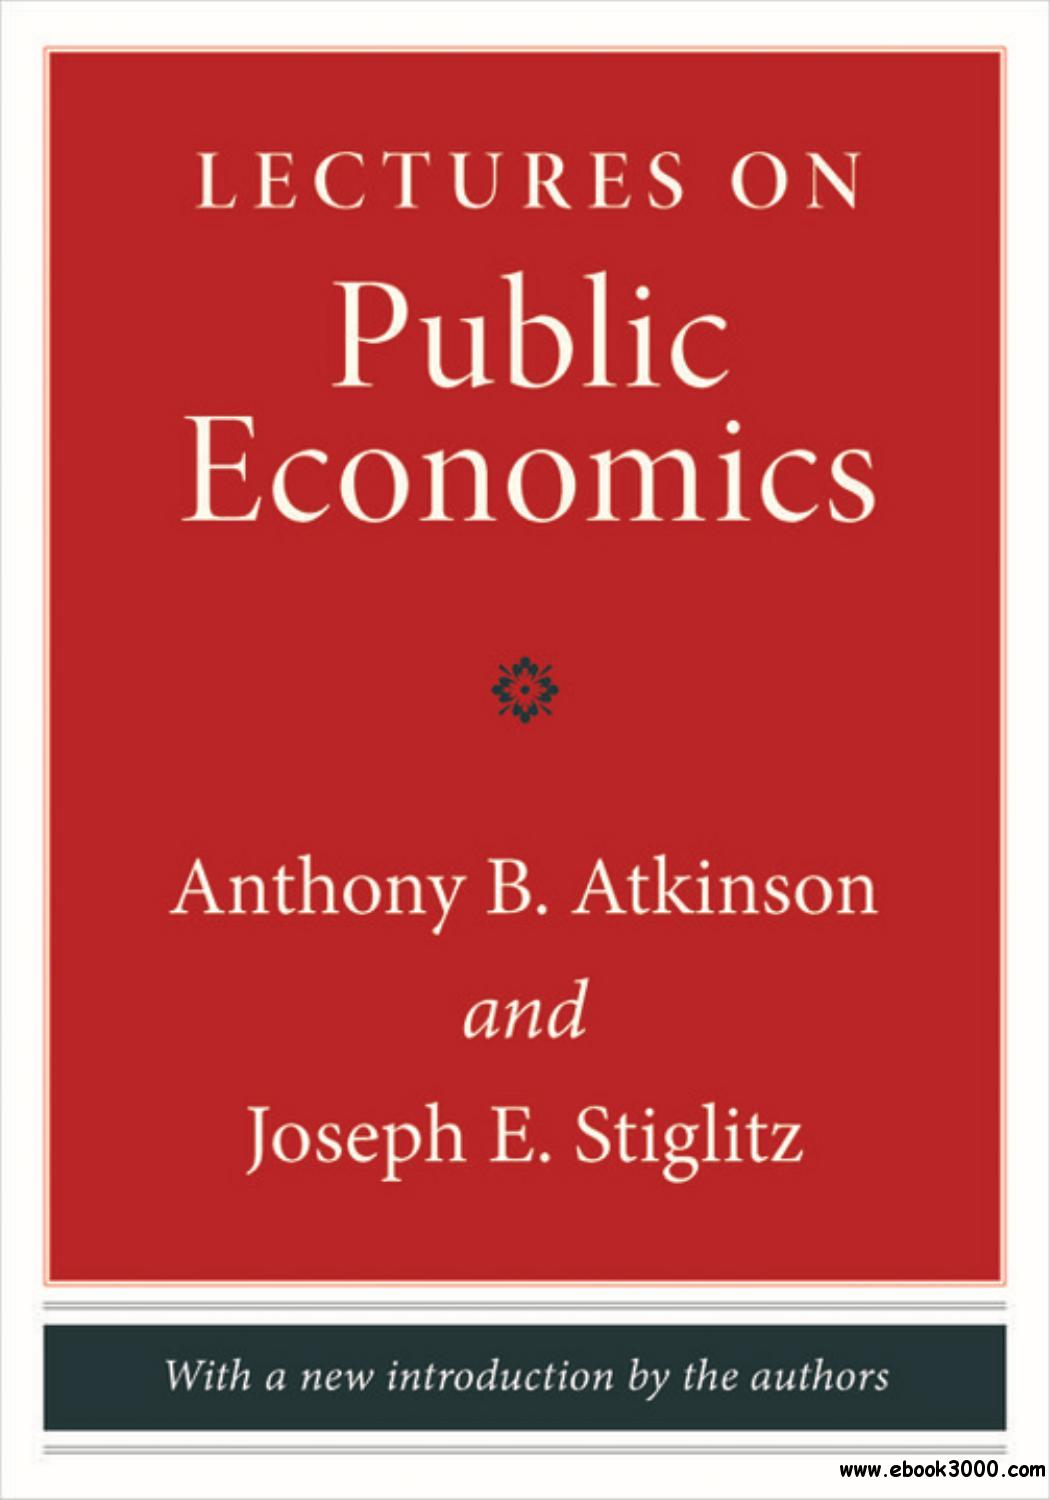 public economics 64k00 - law and economics: general -- k10 - basic areas of law k11 - property law -- k12 - contract law -- k13 - tort law and product liability -- k14 - criminal law -- k19 - other -- k20 - regulation and business law -- k21 - antitrust law -- k22 - corporation and securities law -- k23 - regulated industries and administrative law -- k29.